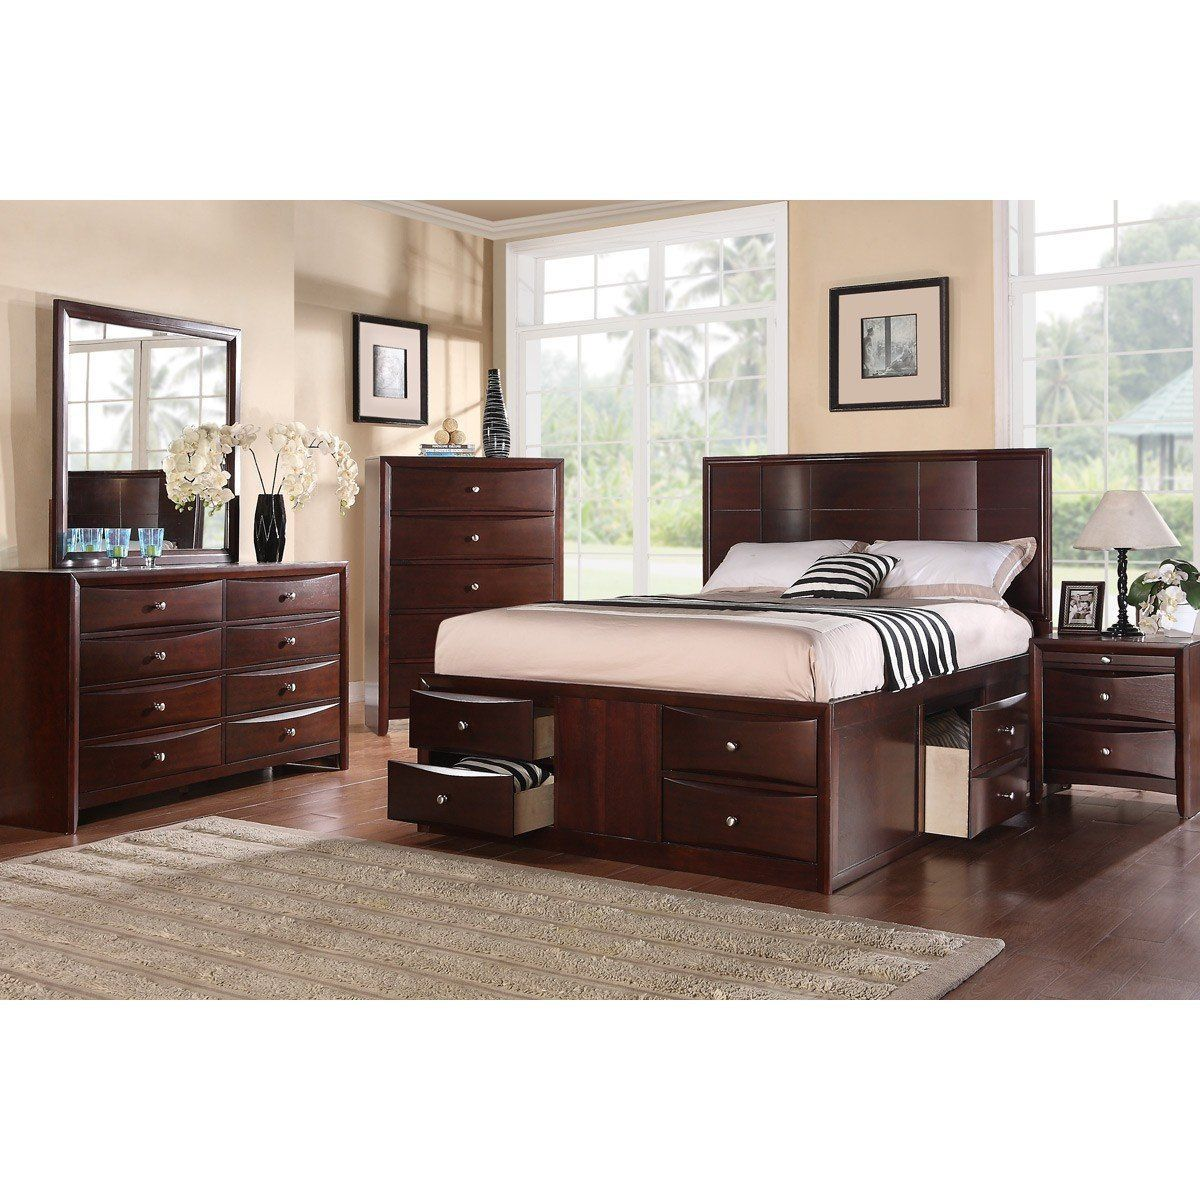 Espresso finish modern bed in products pinterest bedroom